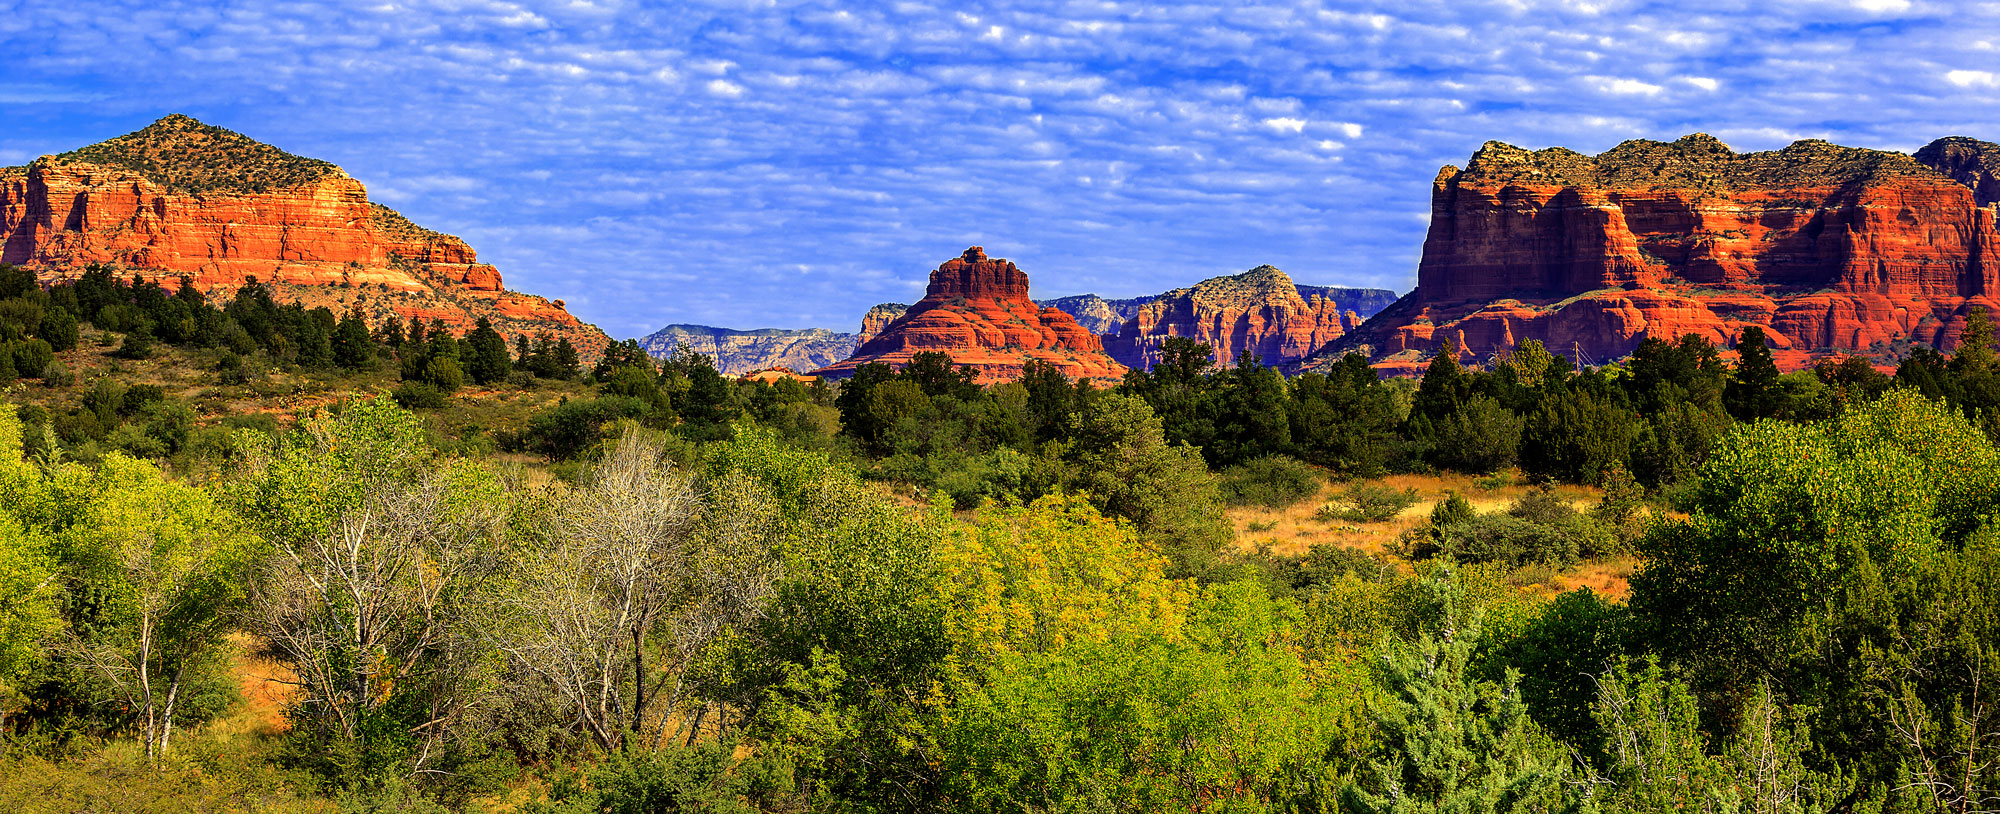 Sedona Vortex Adventures Red Rock Tours